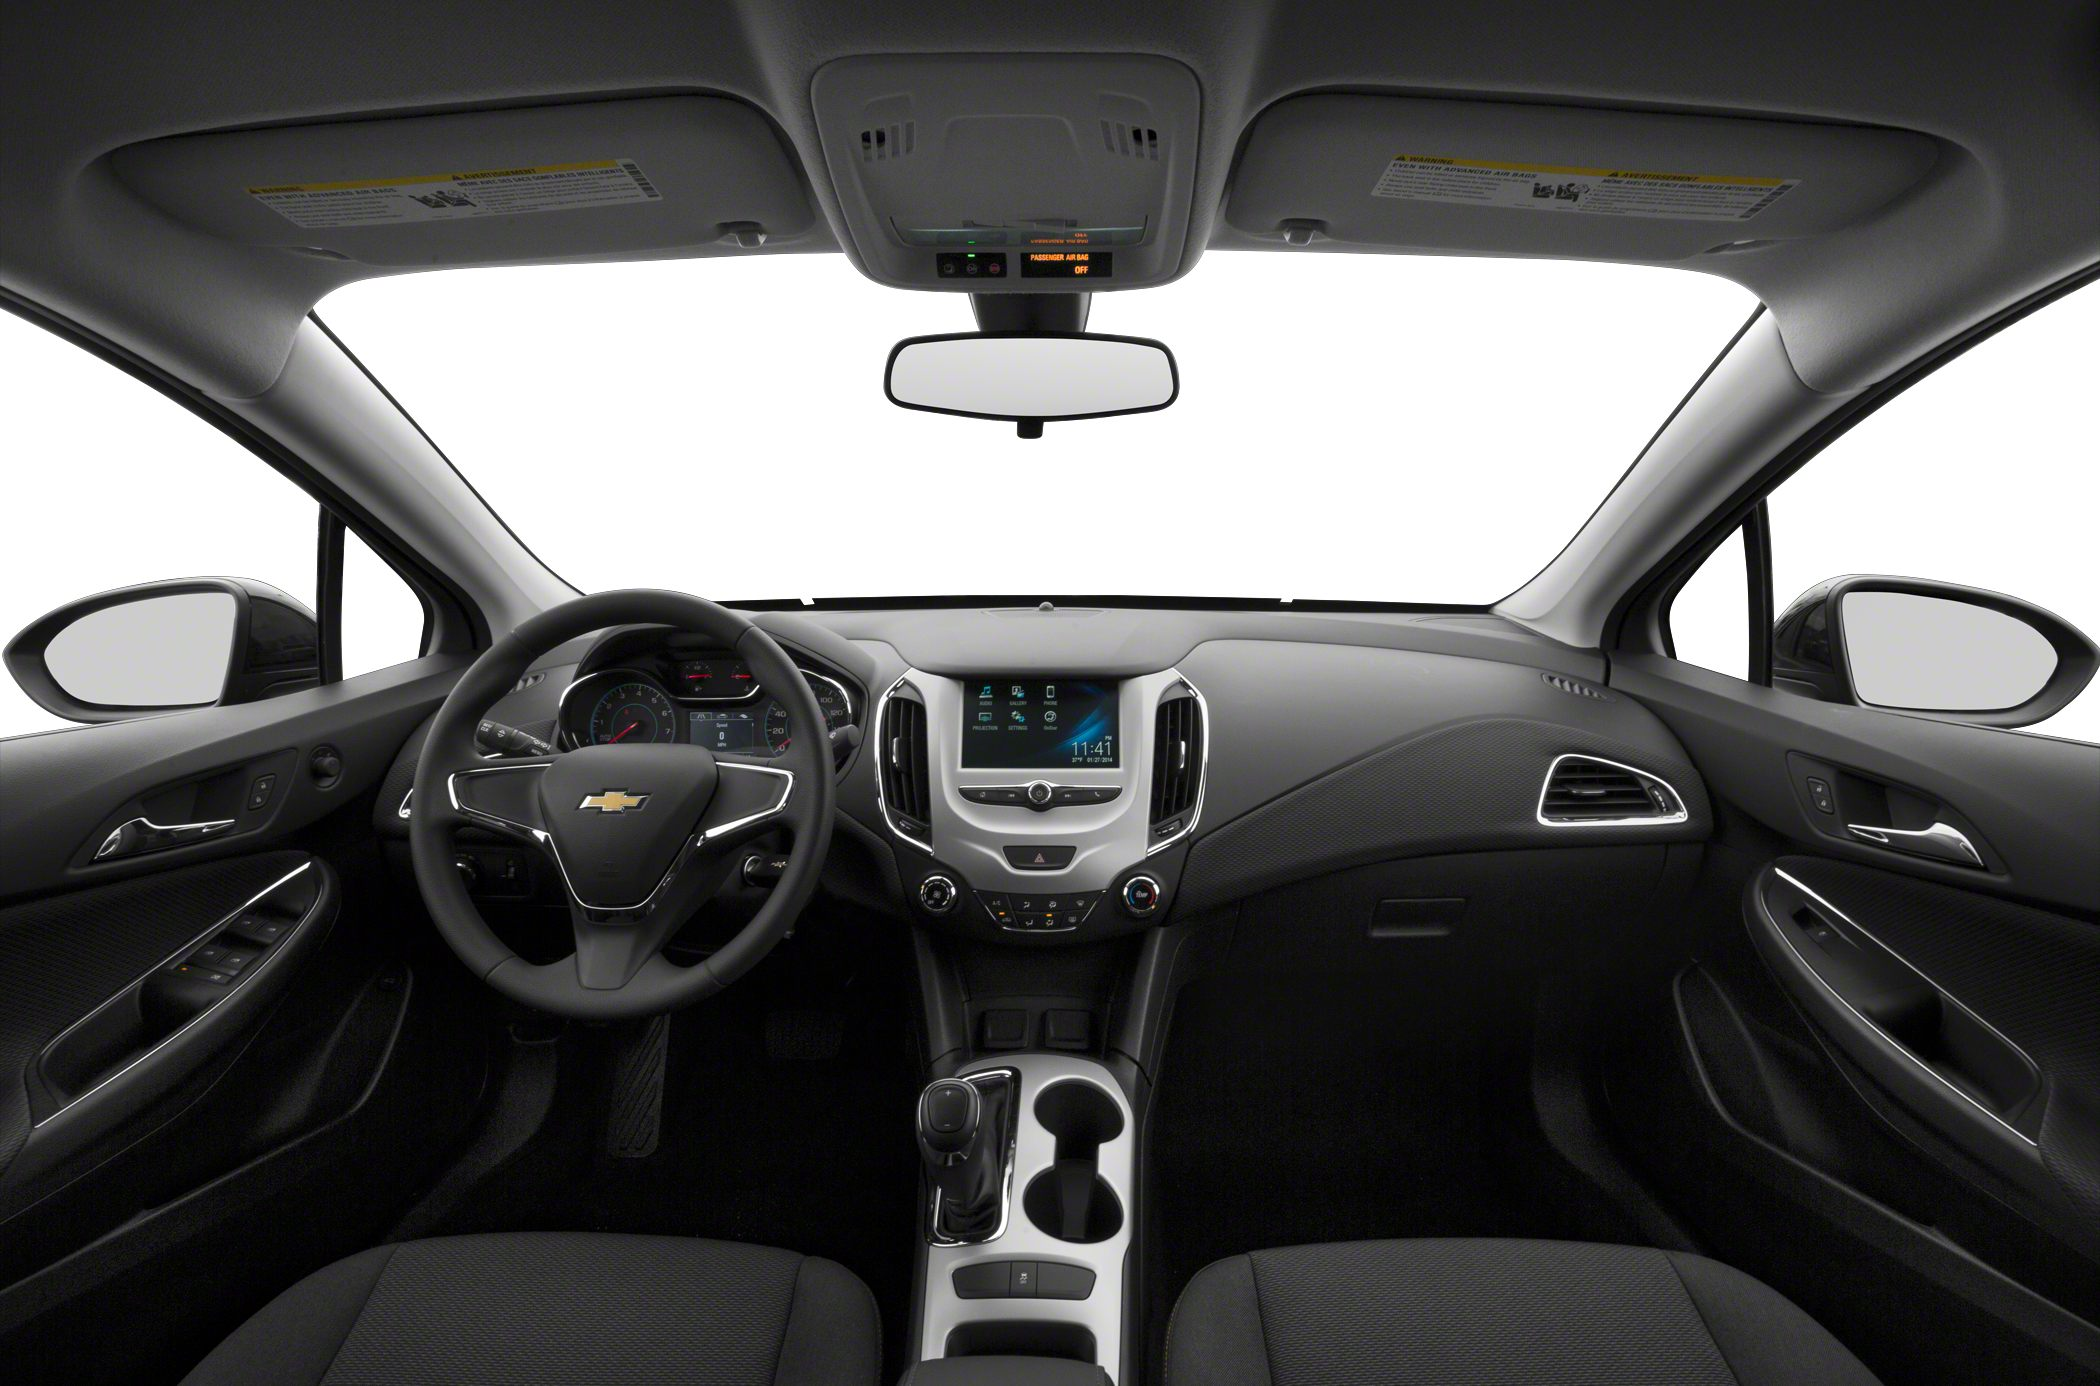 Chevy cruze for sale near me images drivins for Motor and vehicles near me